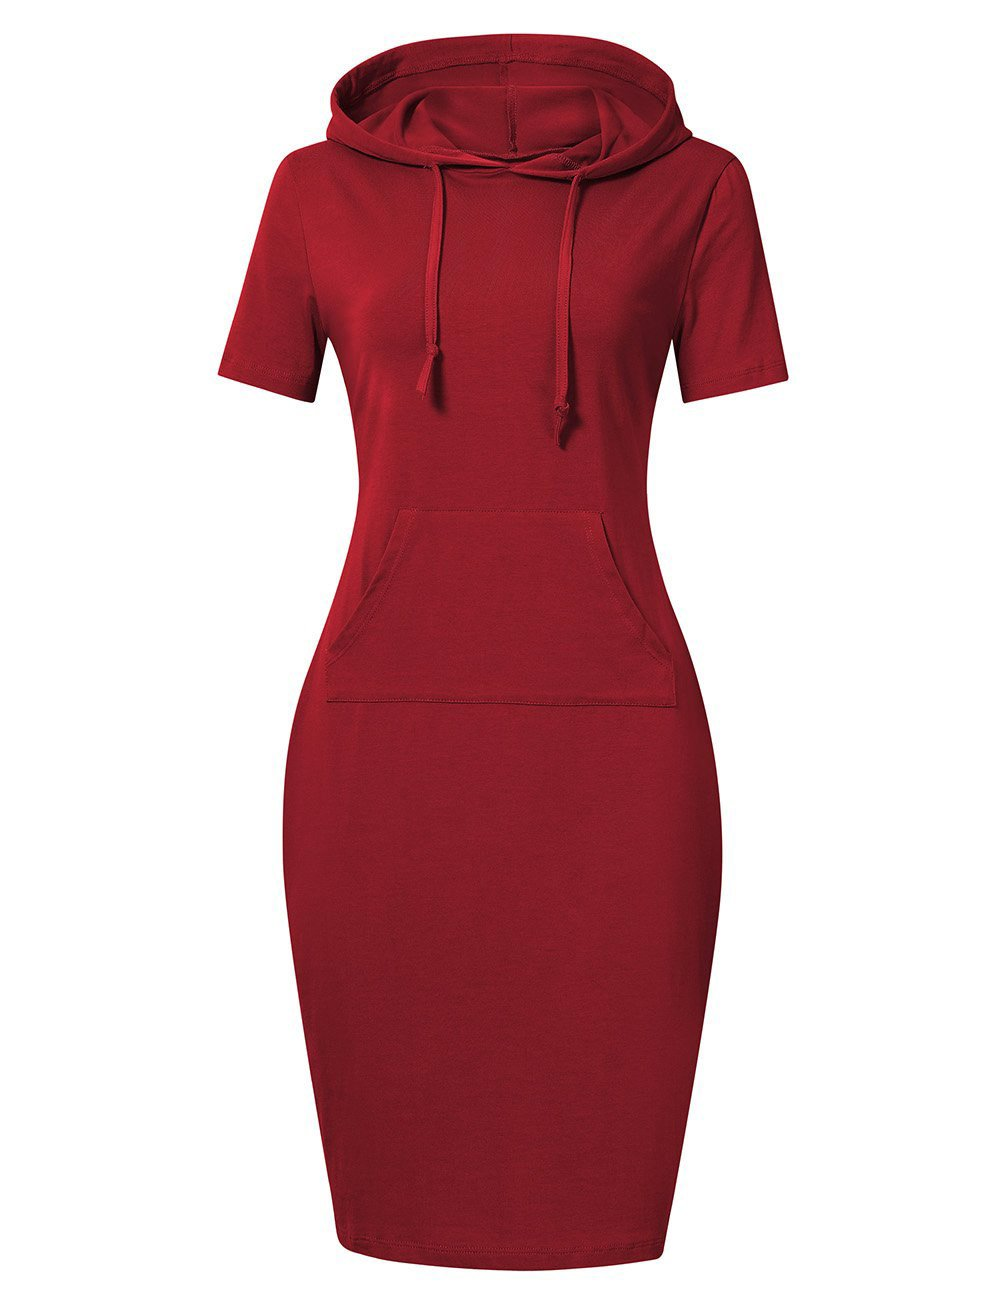 Available at Amazon: MISSKY Women Stripe Pocket Knee Length Slim Casual Pullover Hoodie Dress